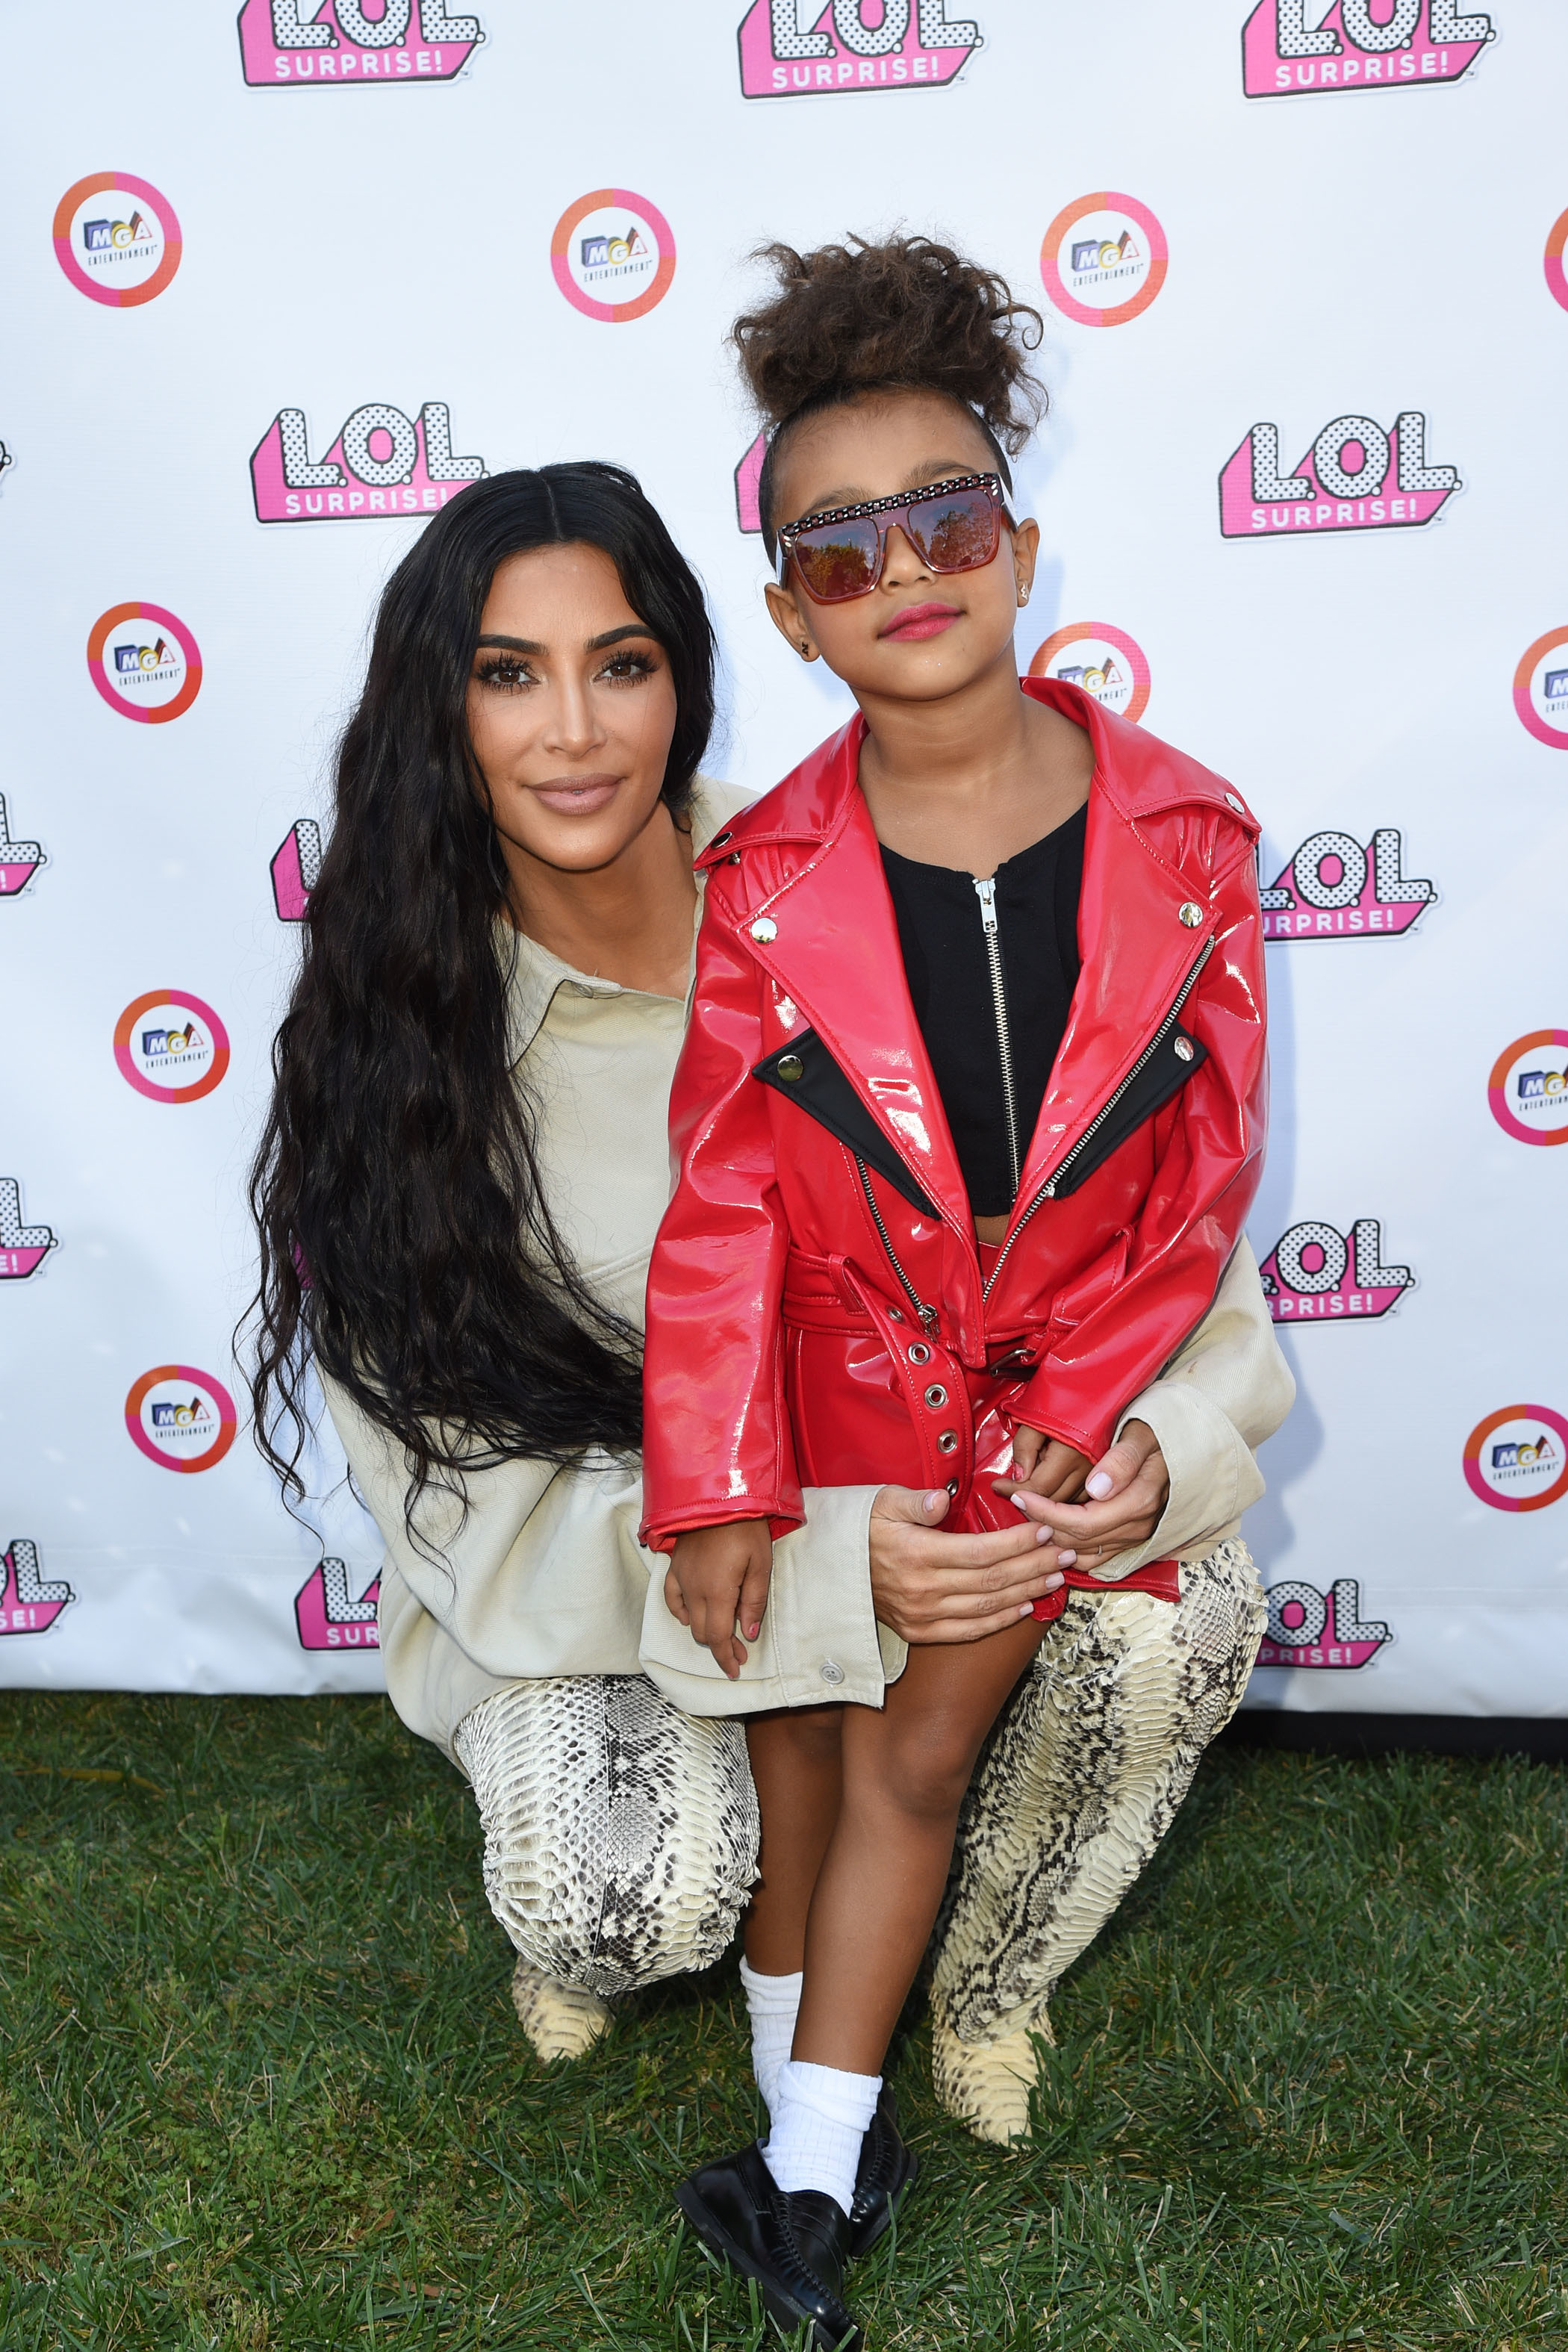 Kim Kardashian West poses with daughter North West, who modeled at the event, at the L.O.L. Surprise! fashion show in Los Angeles on Sept. 22, 2018.